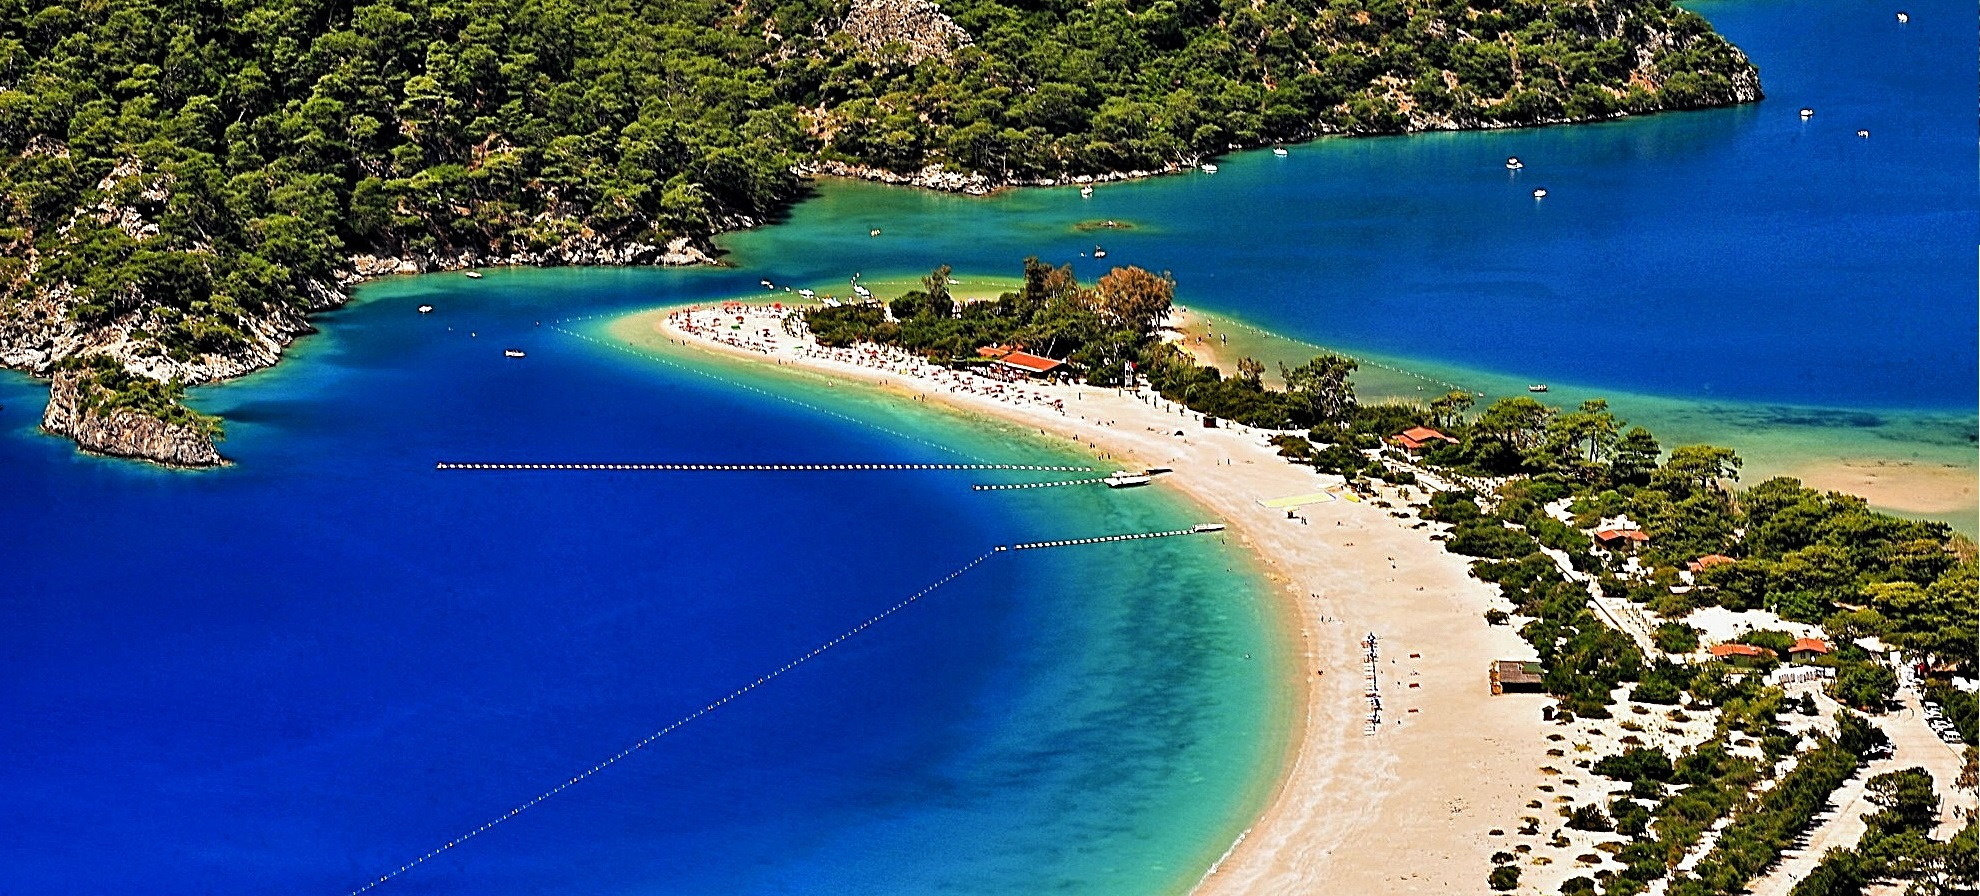 Oludeniz,Light Tours Vacation Activities, Holiday Locations,Oludeniz 57